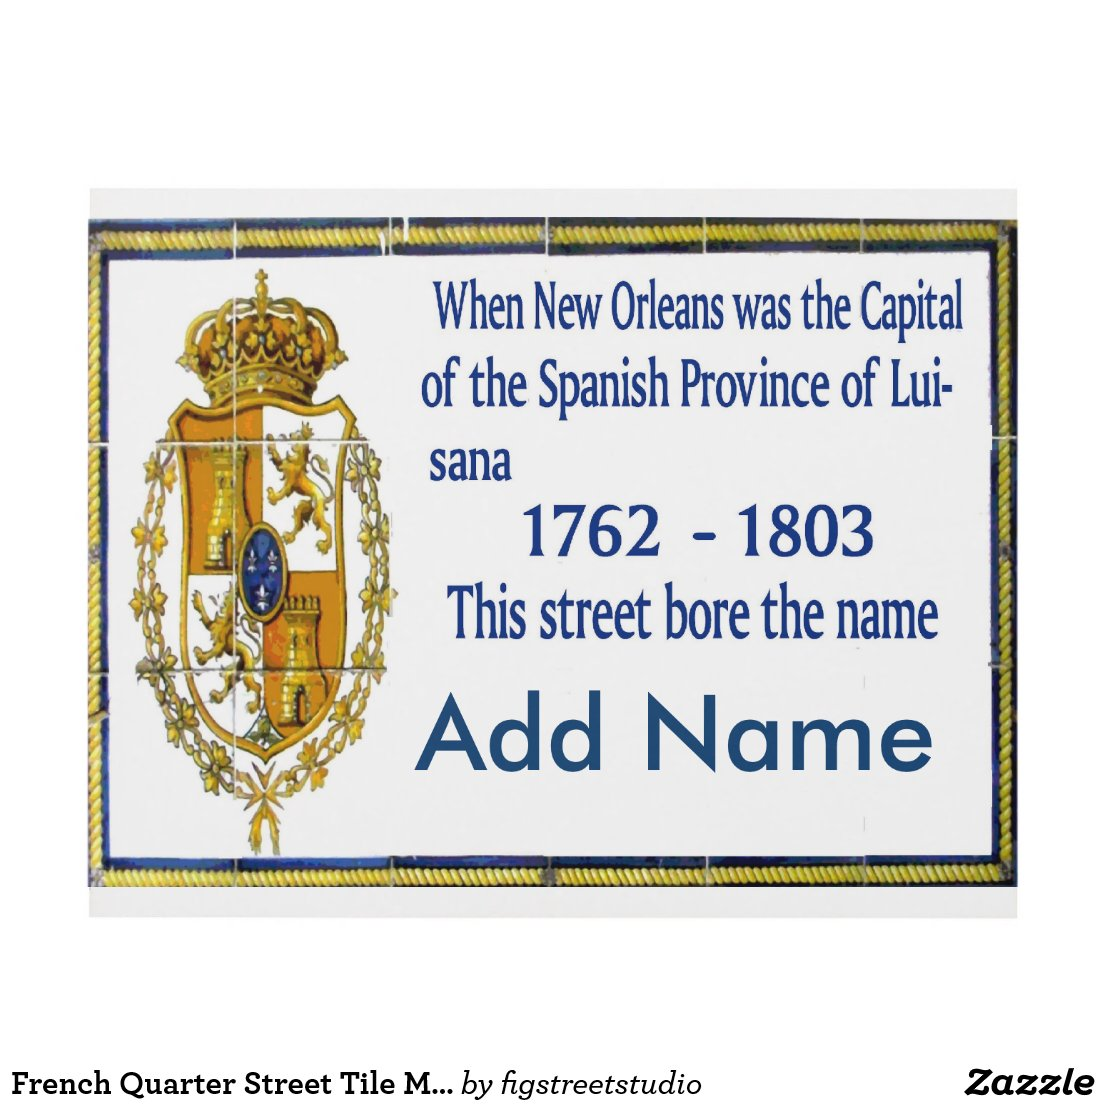 French Quarter Street Tile Murals, add text